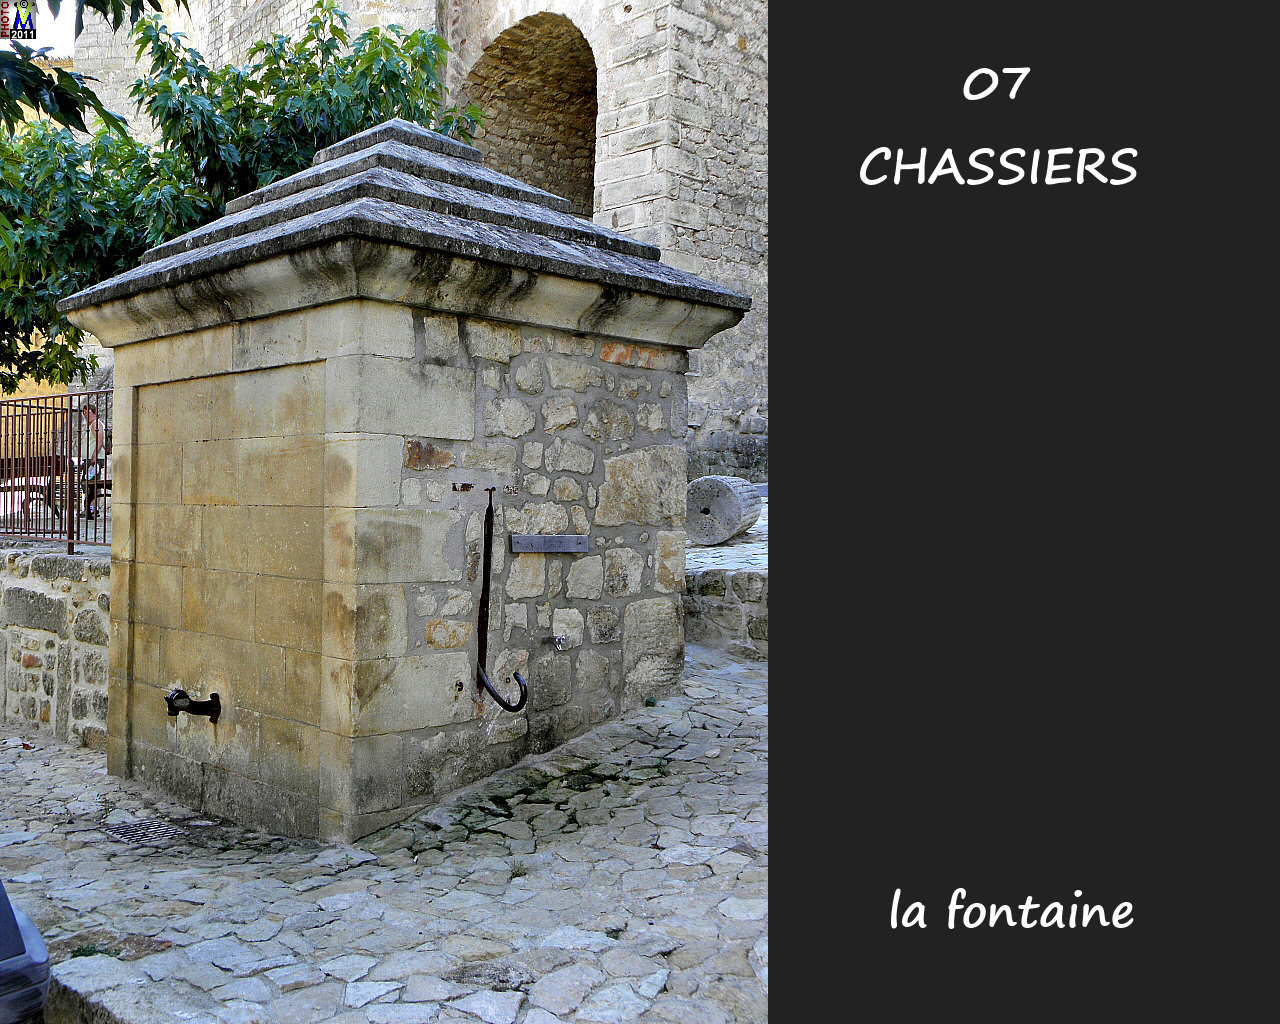 07CHASSIERS_fontaine_100.jpg